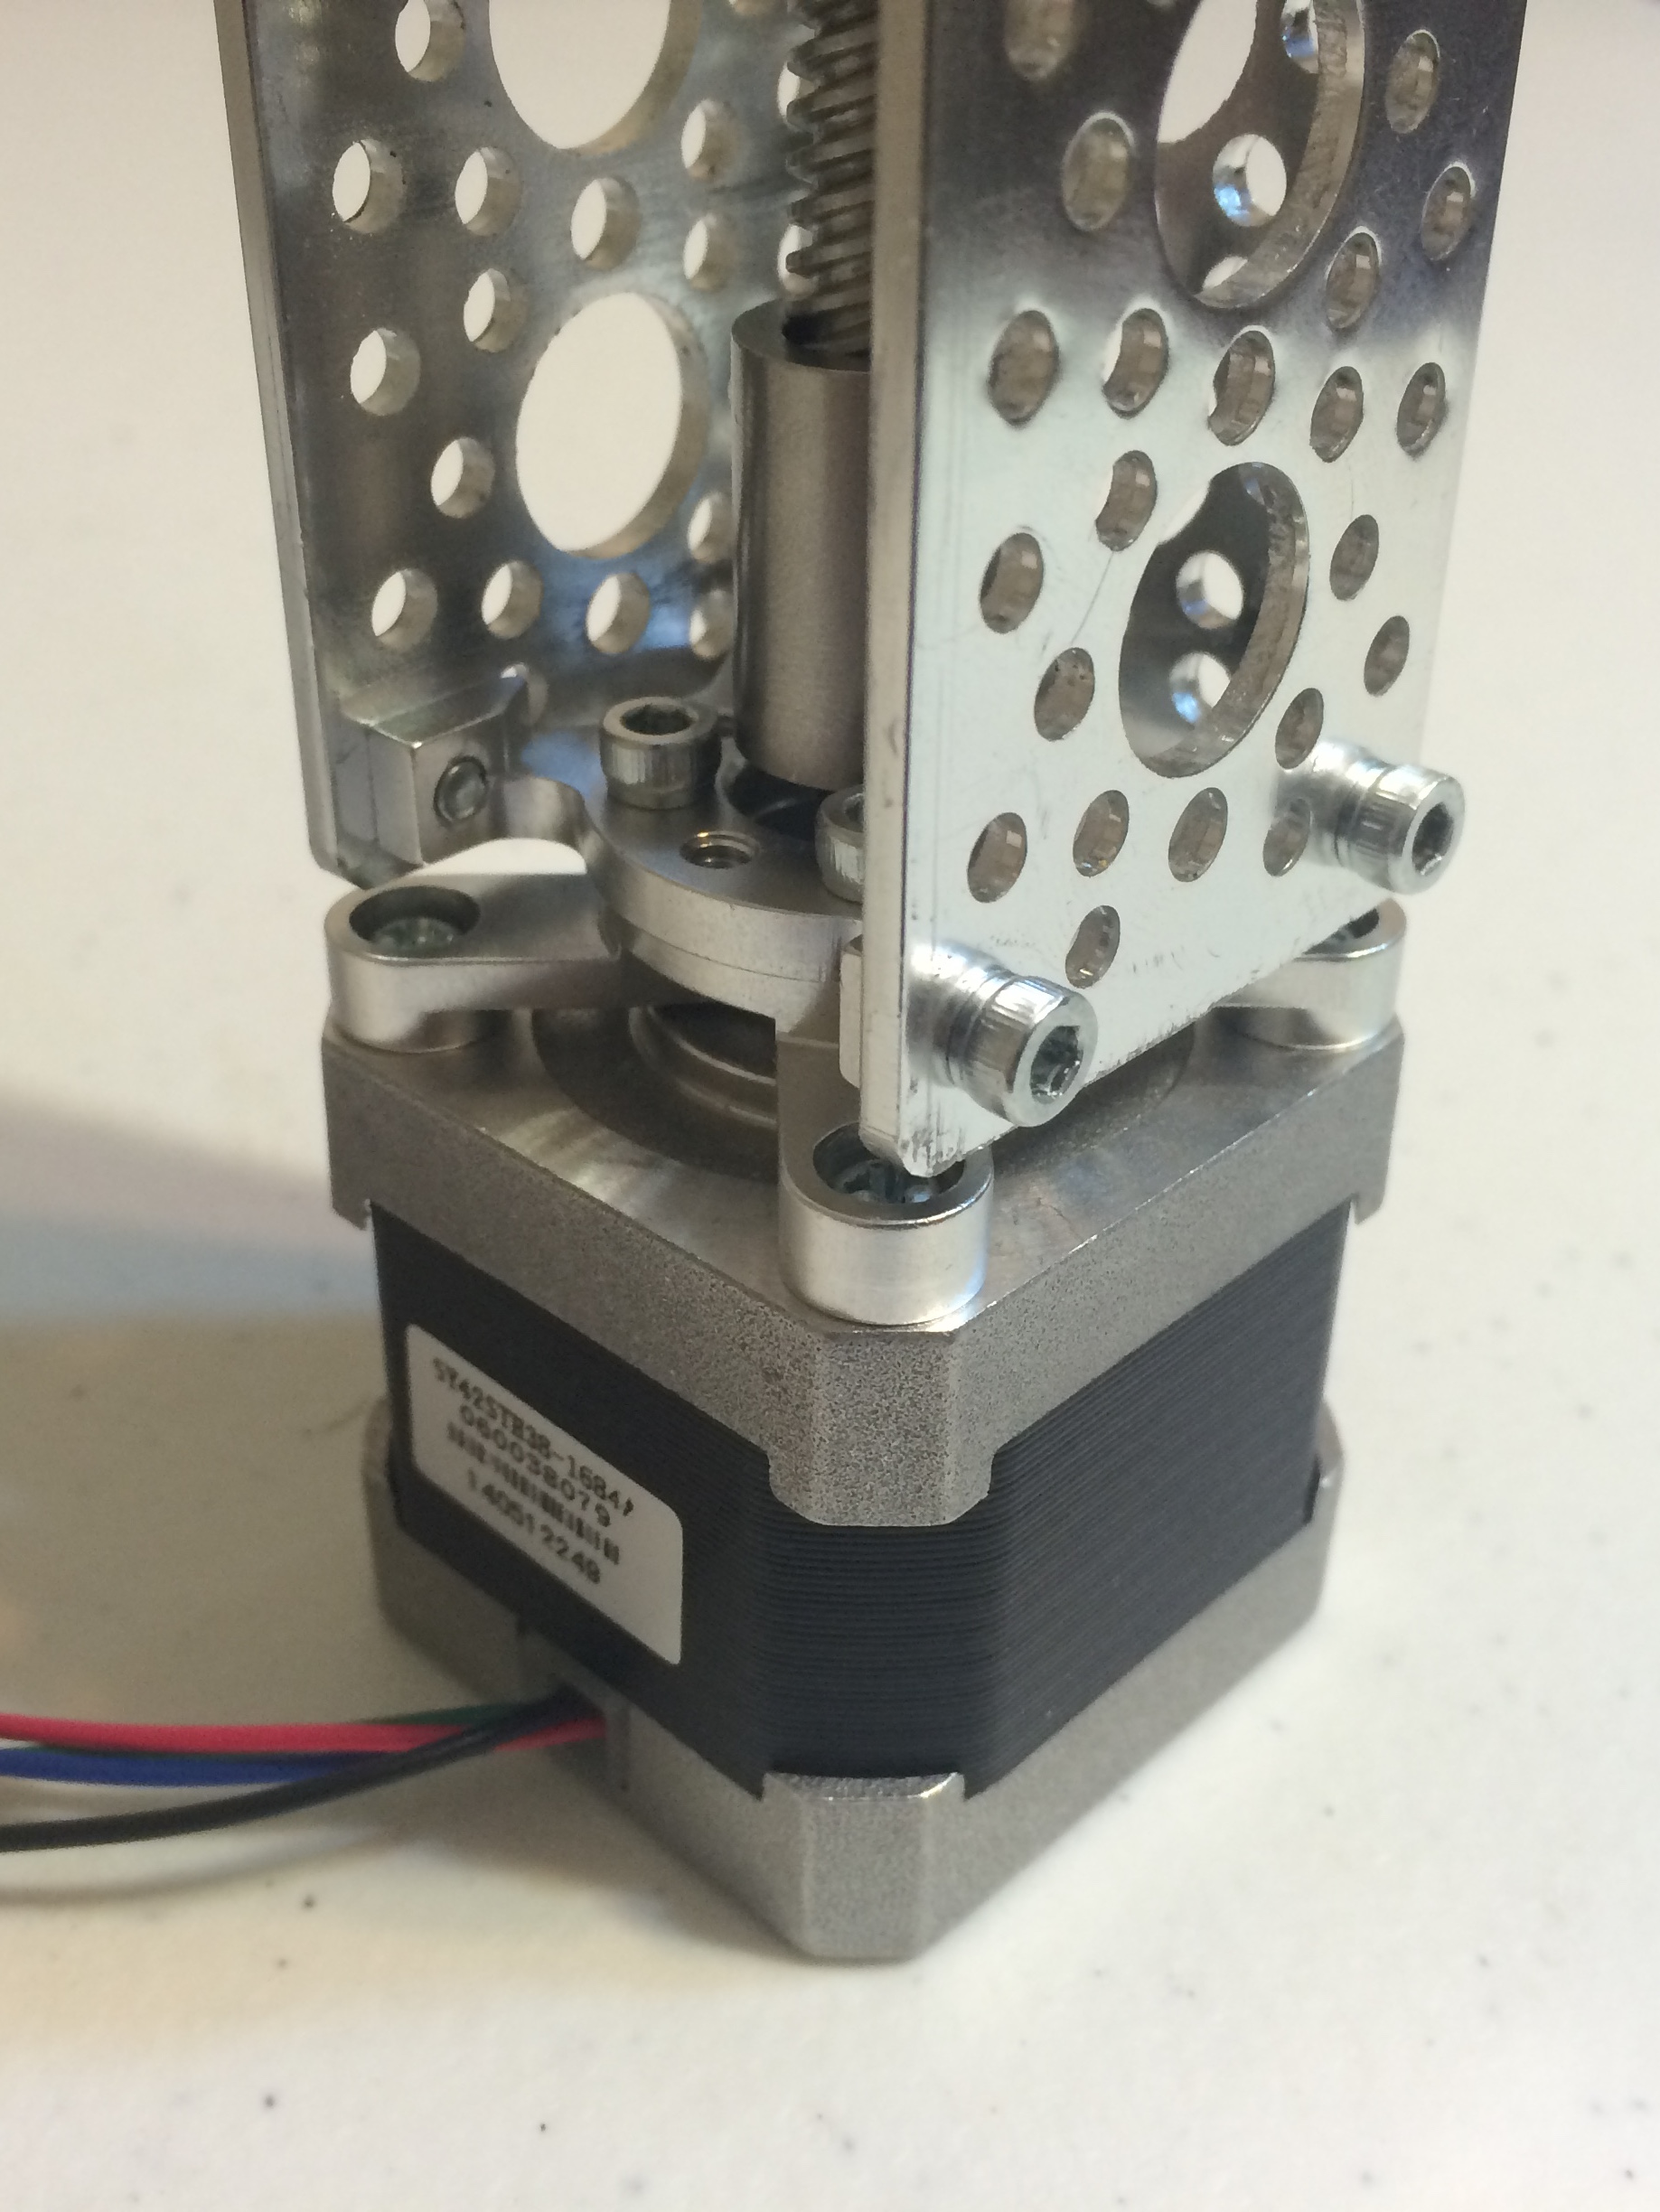 ACTOBOTICS CHANNEL WITH stepper motor assembly. NOTE THE ORIENTATION OF THE side tapped pattern MOUNT and stepper motor assembly.